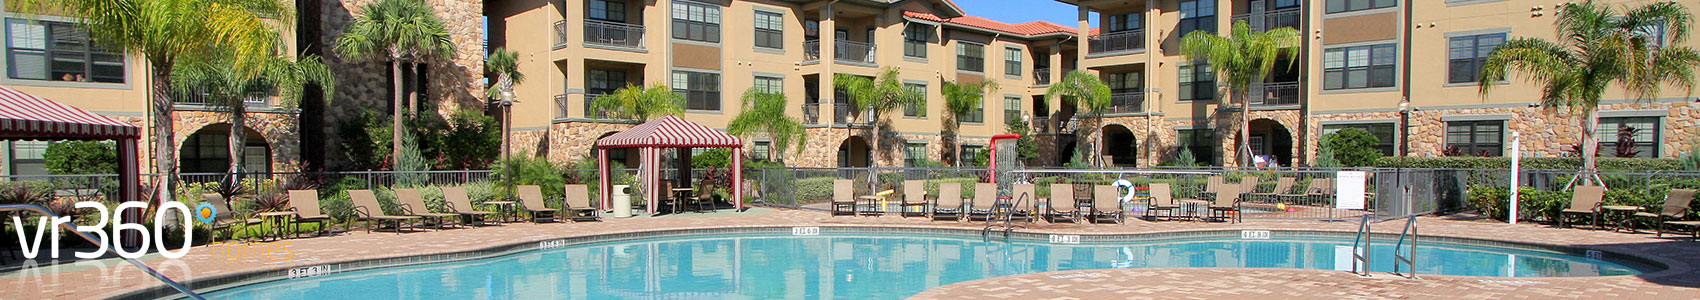 Bella Piazza Florida Condos to Rent